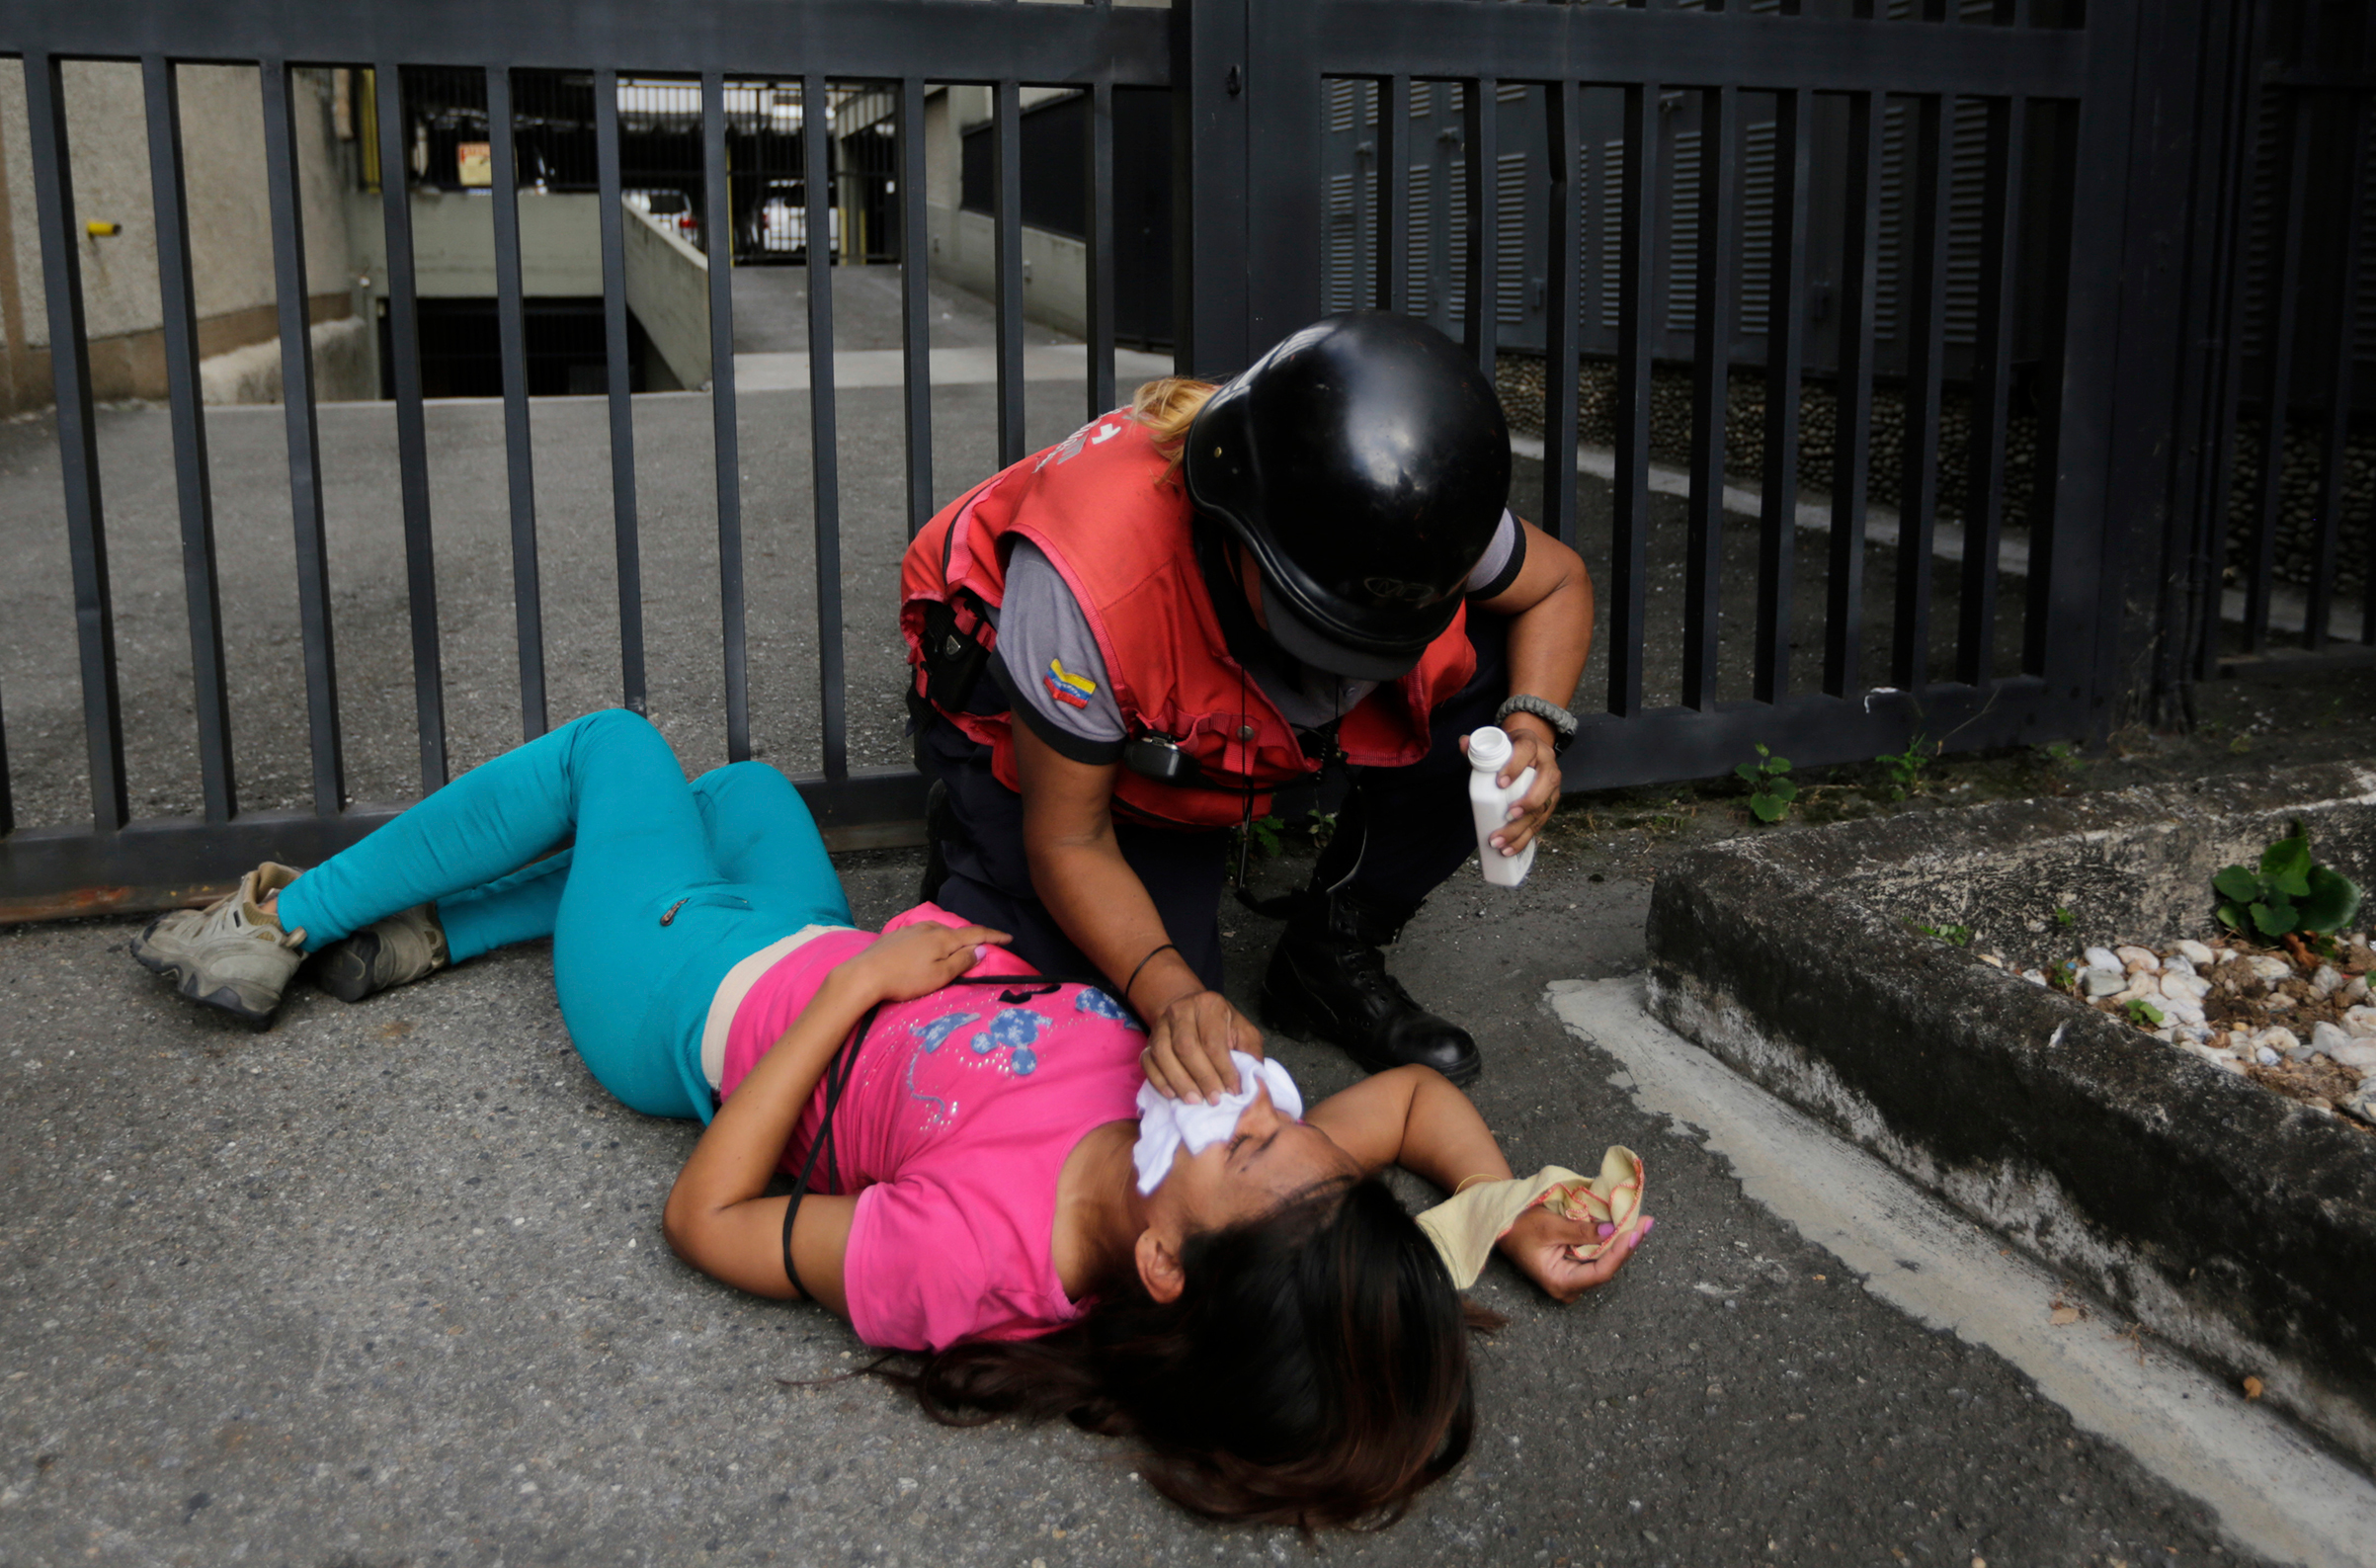 An anti-government protester overcome by tear gas is aided by a paramedic during clashes after a rally demanding the resignation of President Nicolas Maduro in Caracas on Jan. 23, 2019.